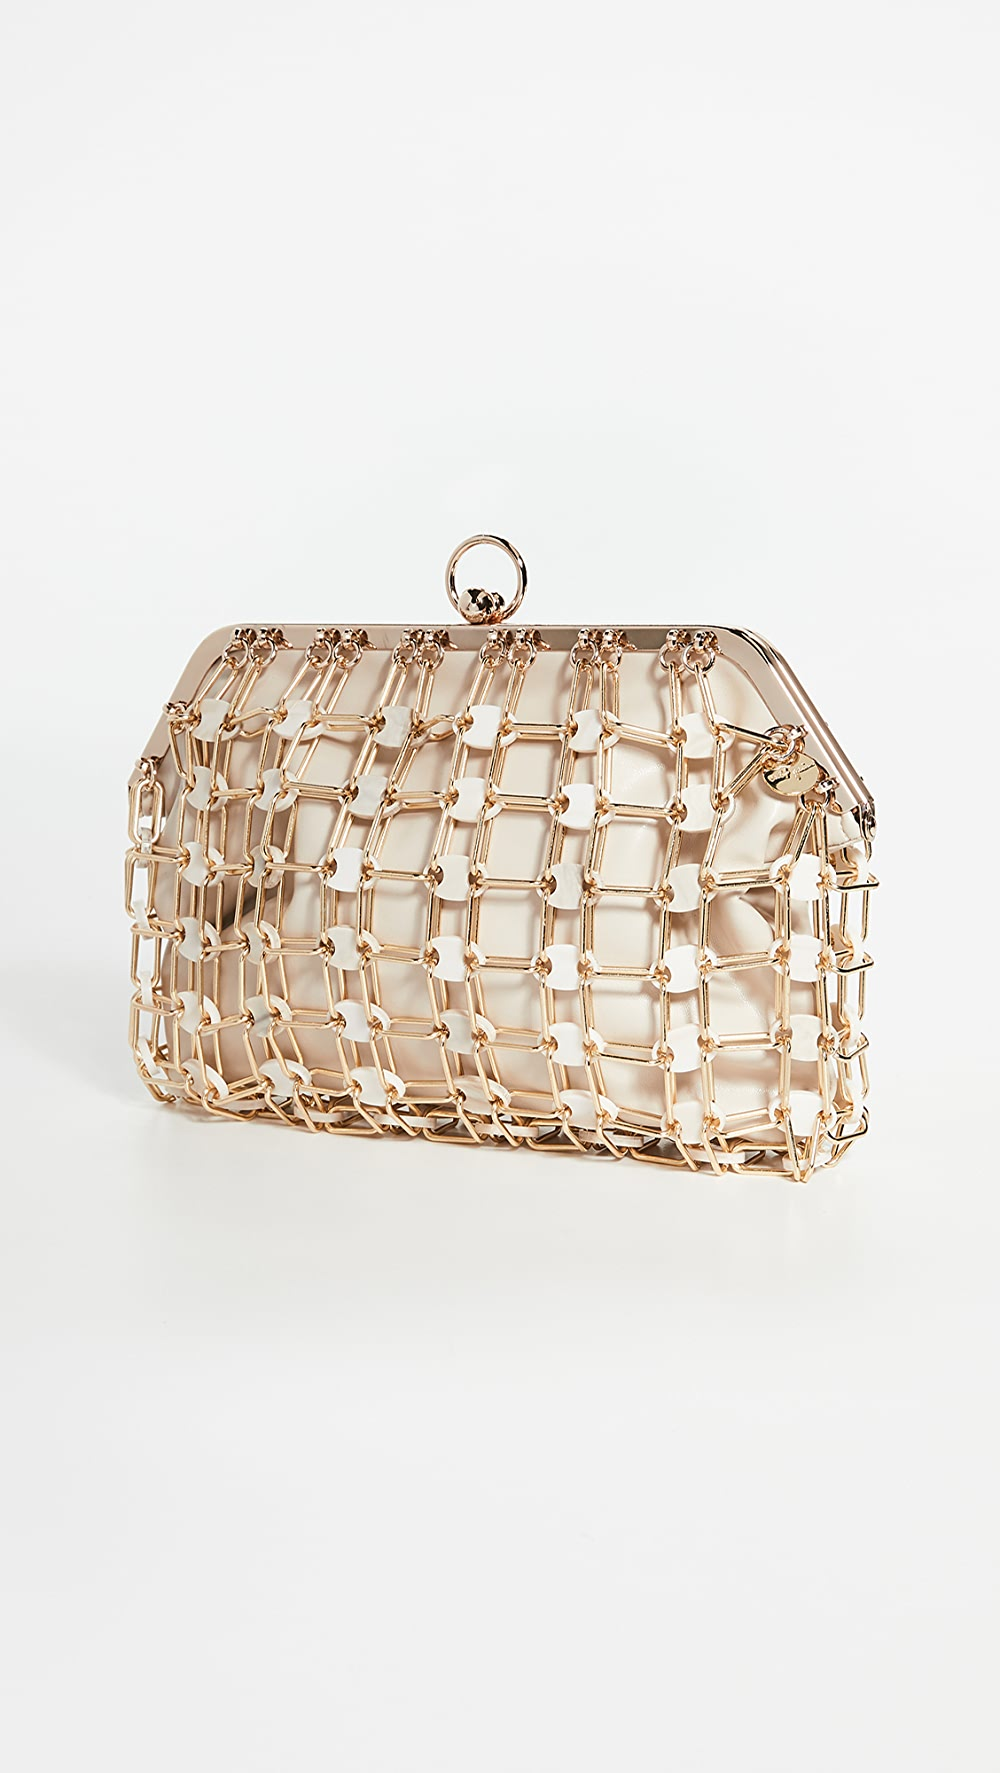 Alert Cult Gaia - Amber Clutch Driving A Roaring Trade